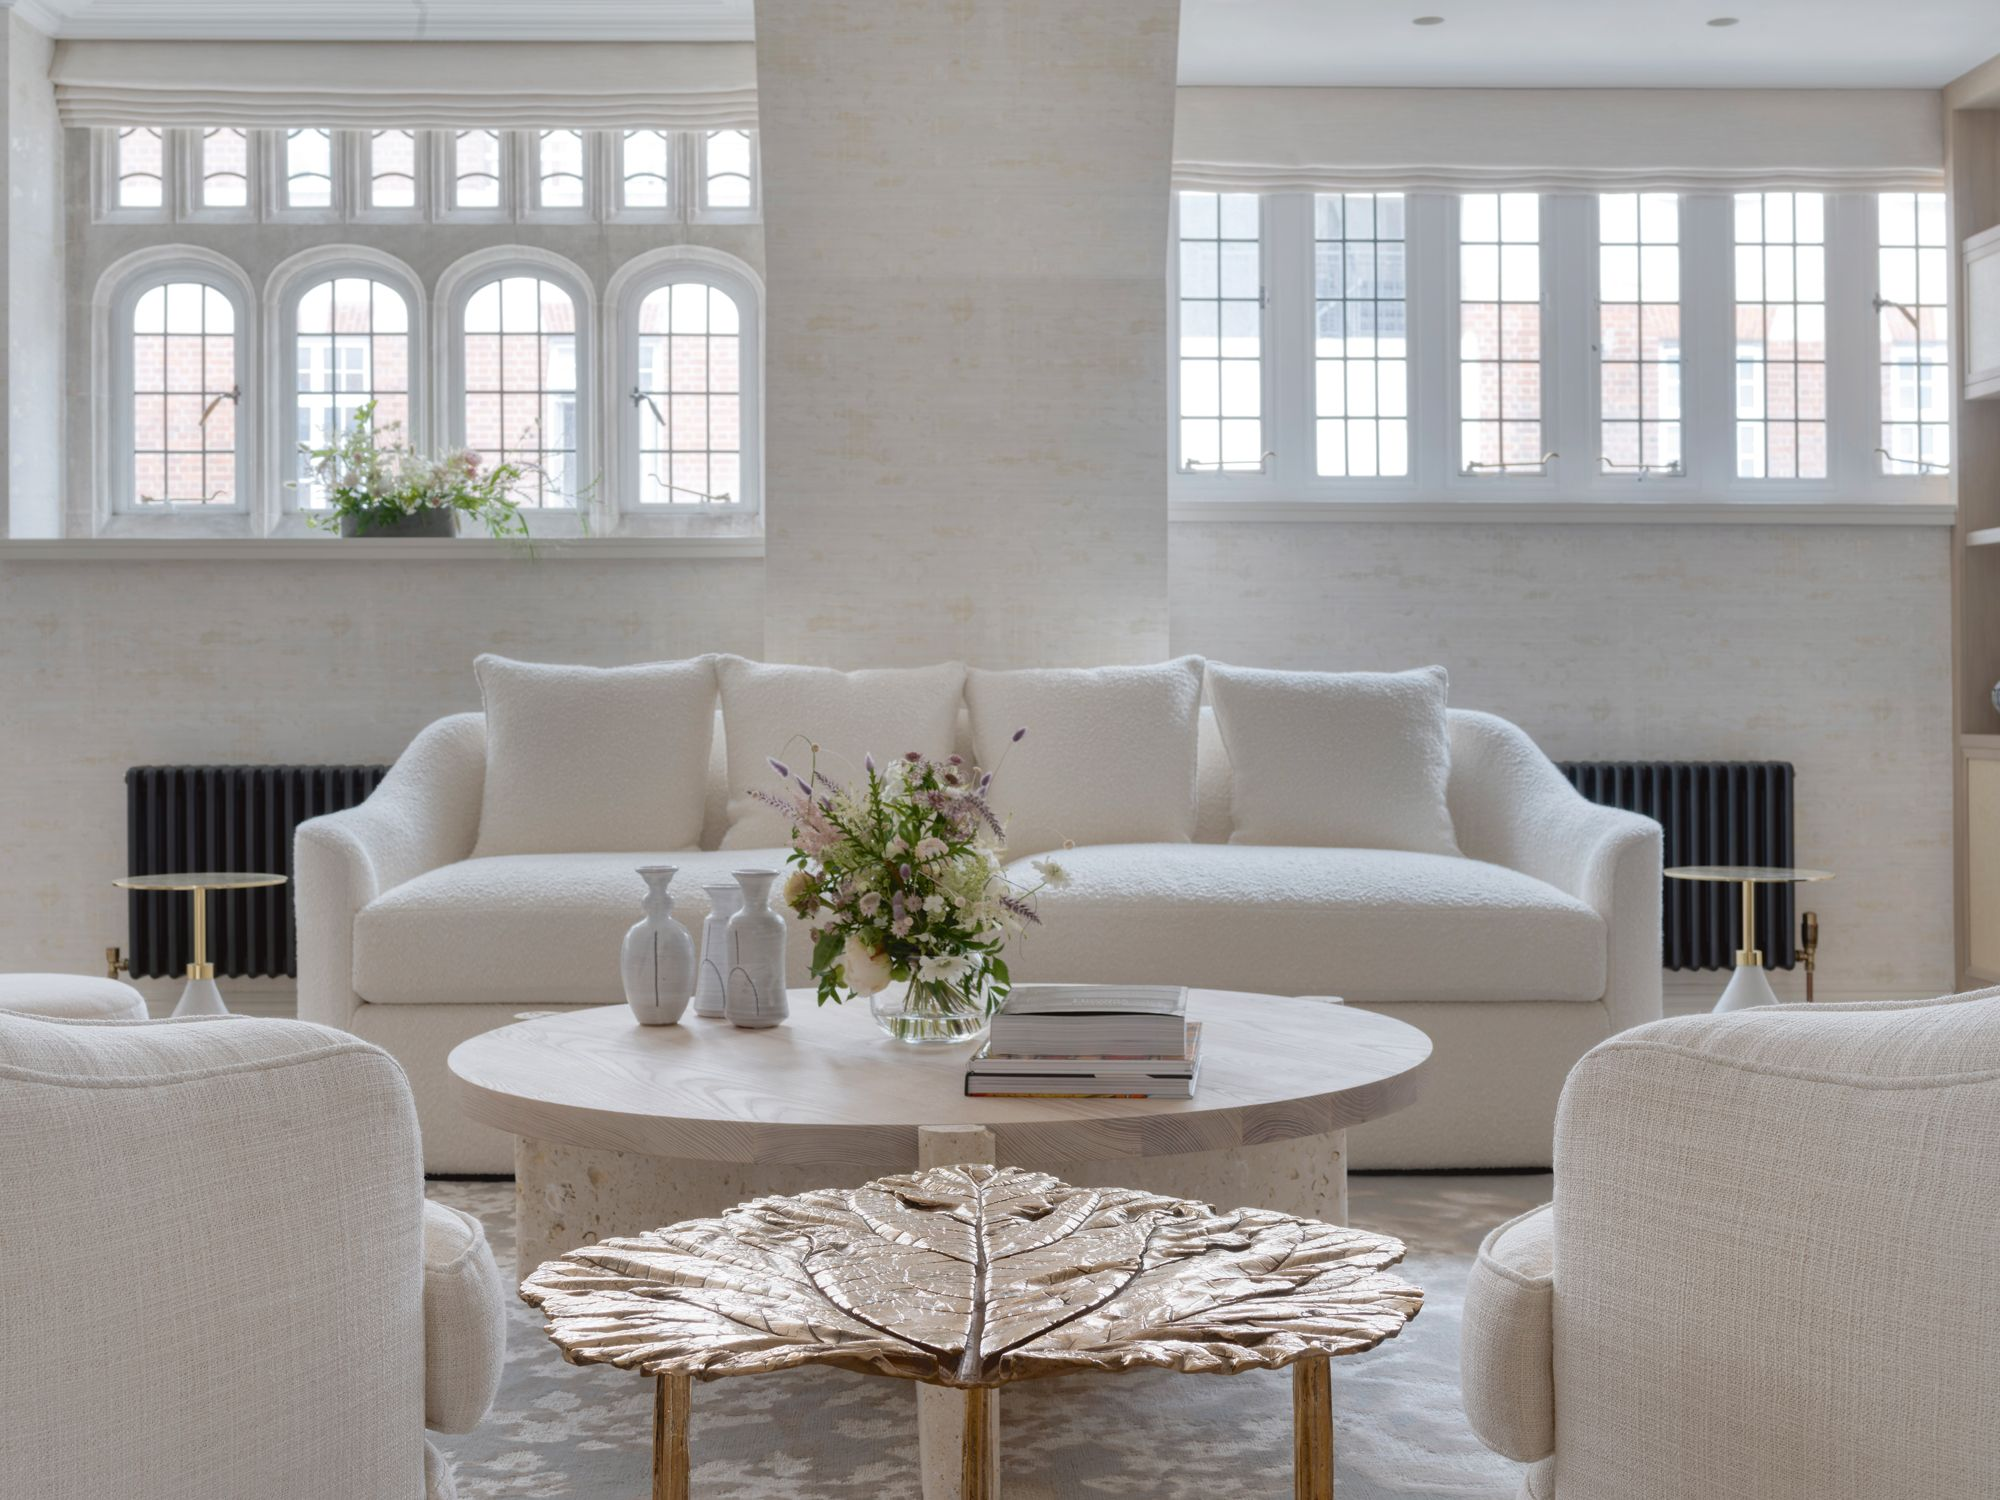 A gold-leaf side table by Clotilde Ancarani adds a glamorous touch to the monochromatic living room